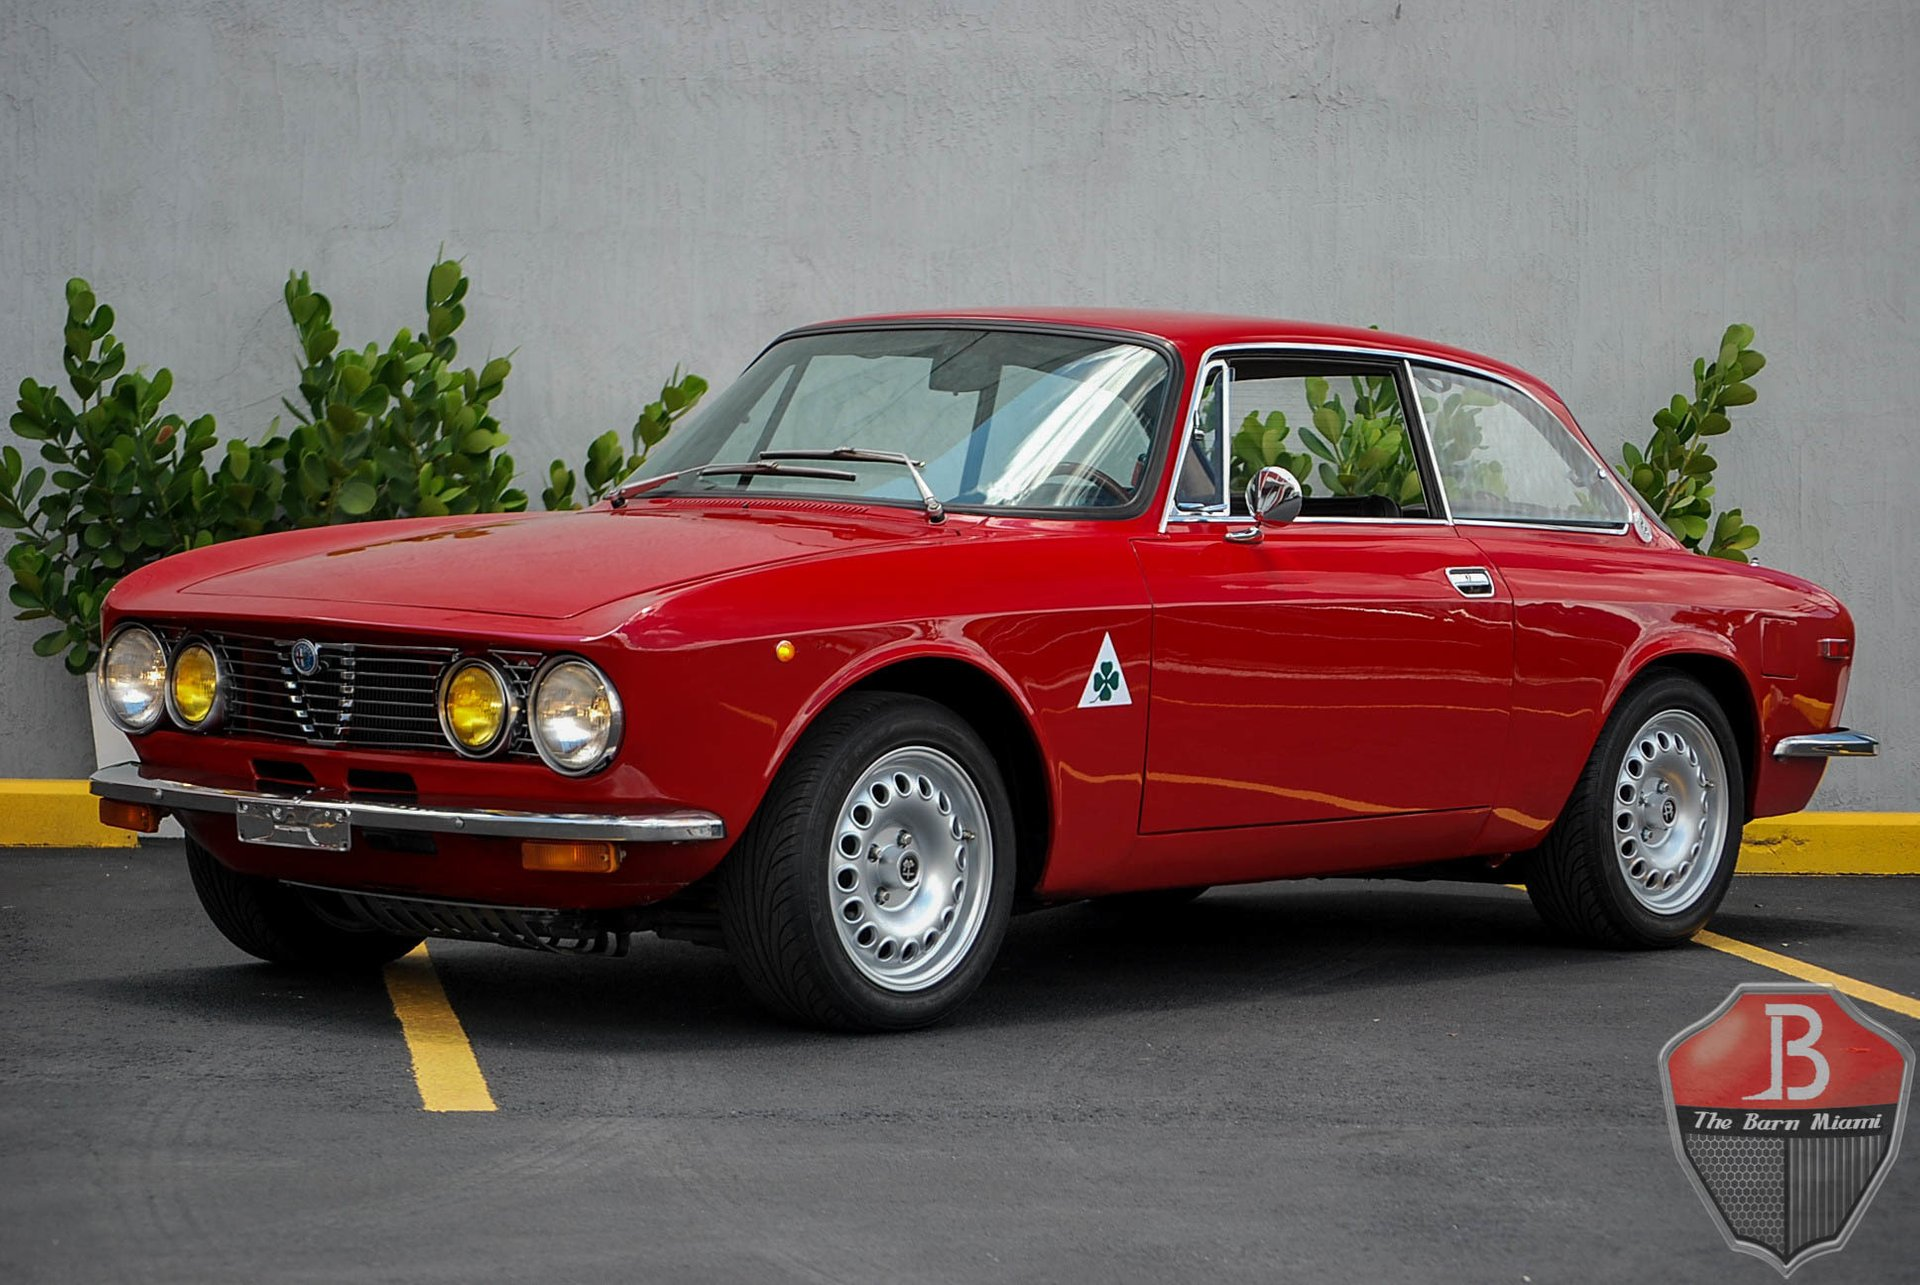 1972 Alfa Romeo GTV | The Barn Miami ®